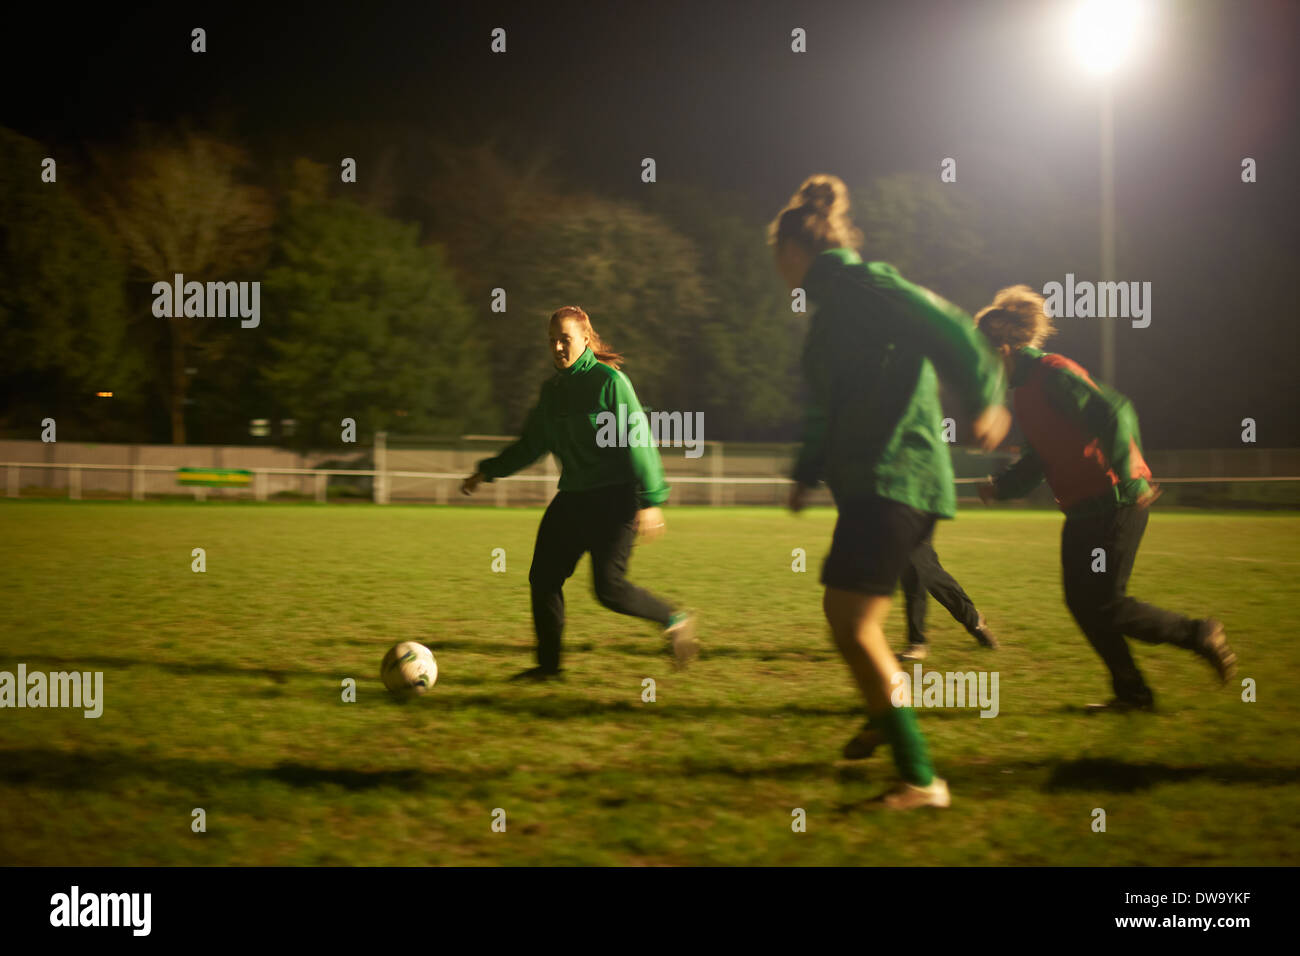 Female soccer players at practice - Stock Image